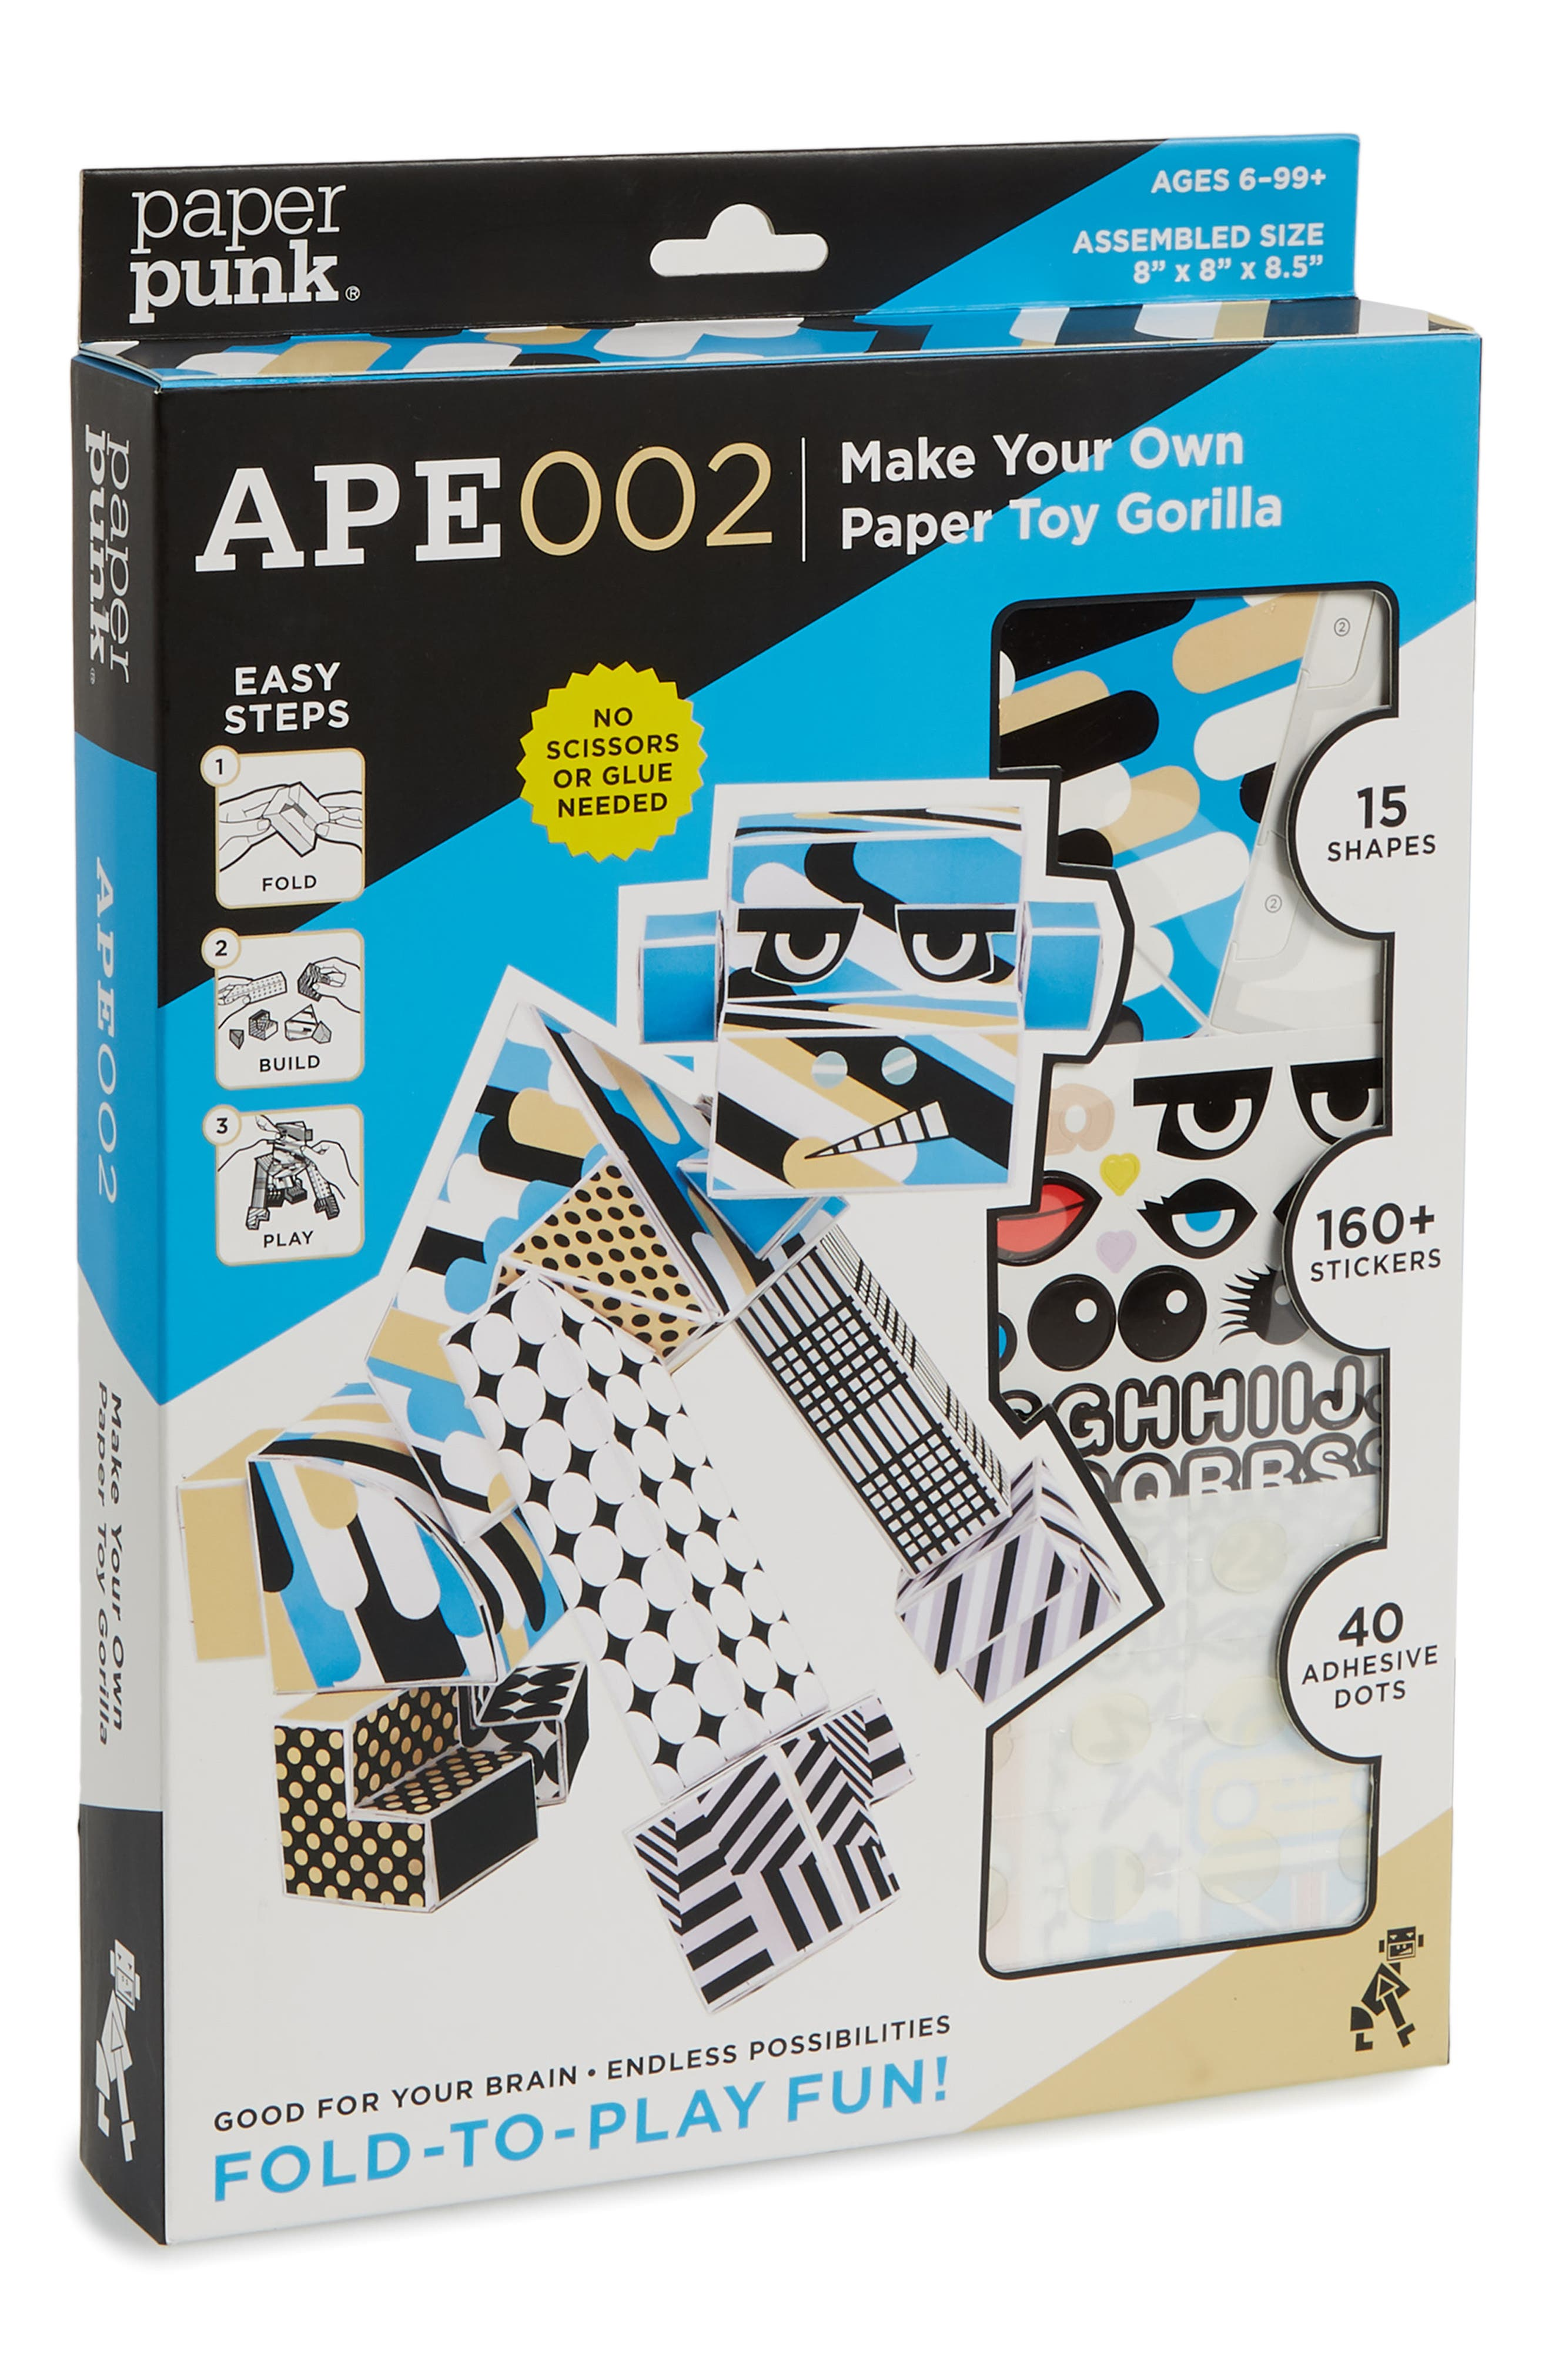 Paper Punk Ape002 Make Your Own Paper Toy Gorilla Kit